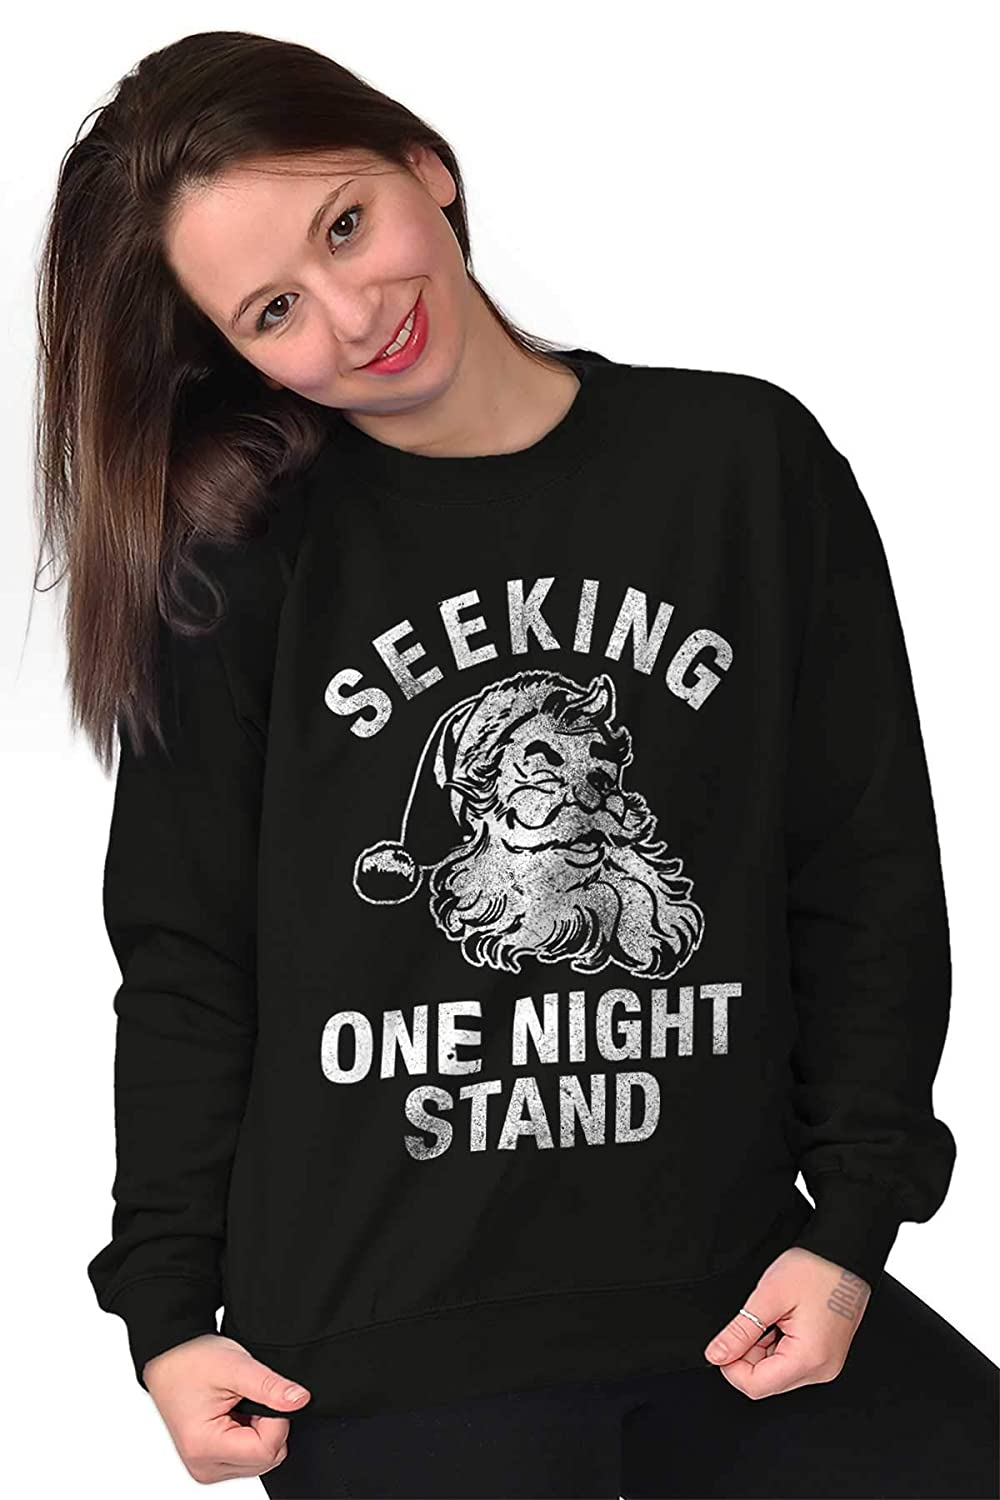 seeking one night stand